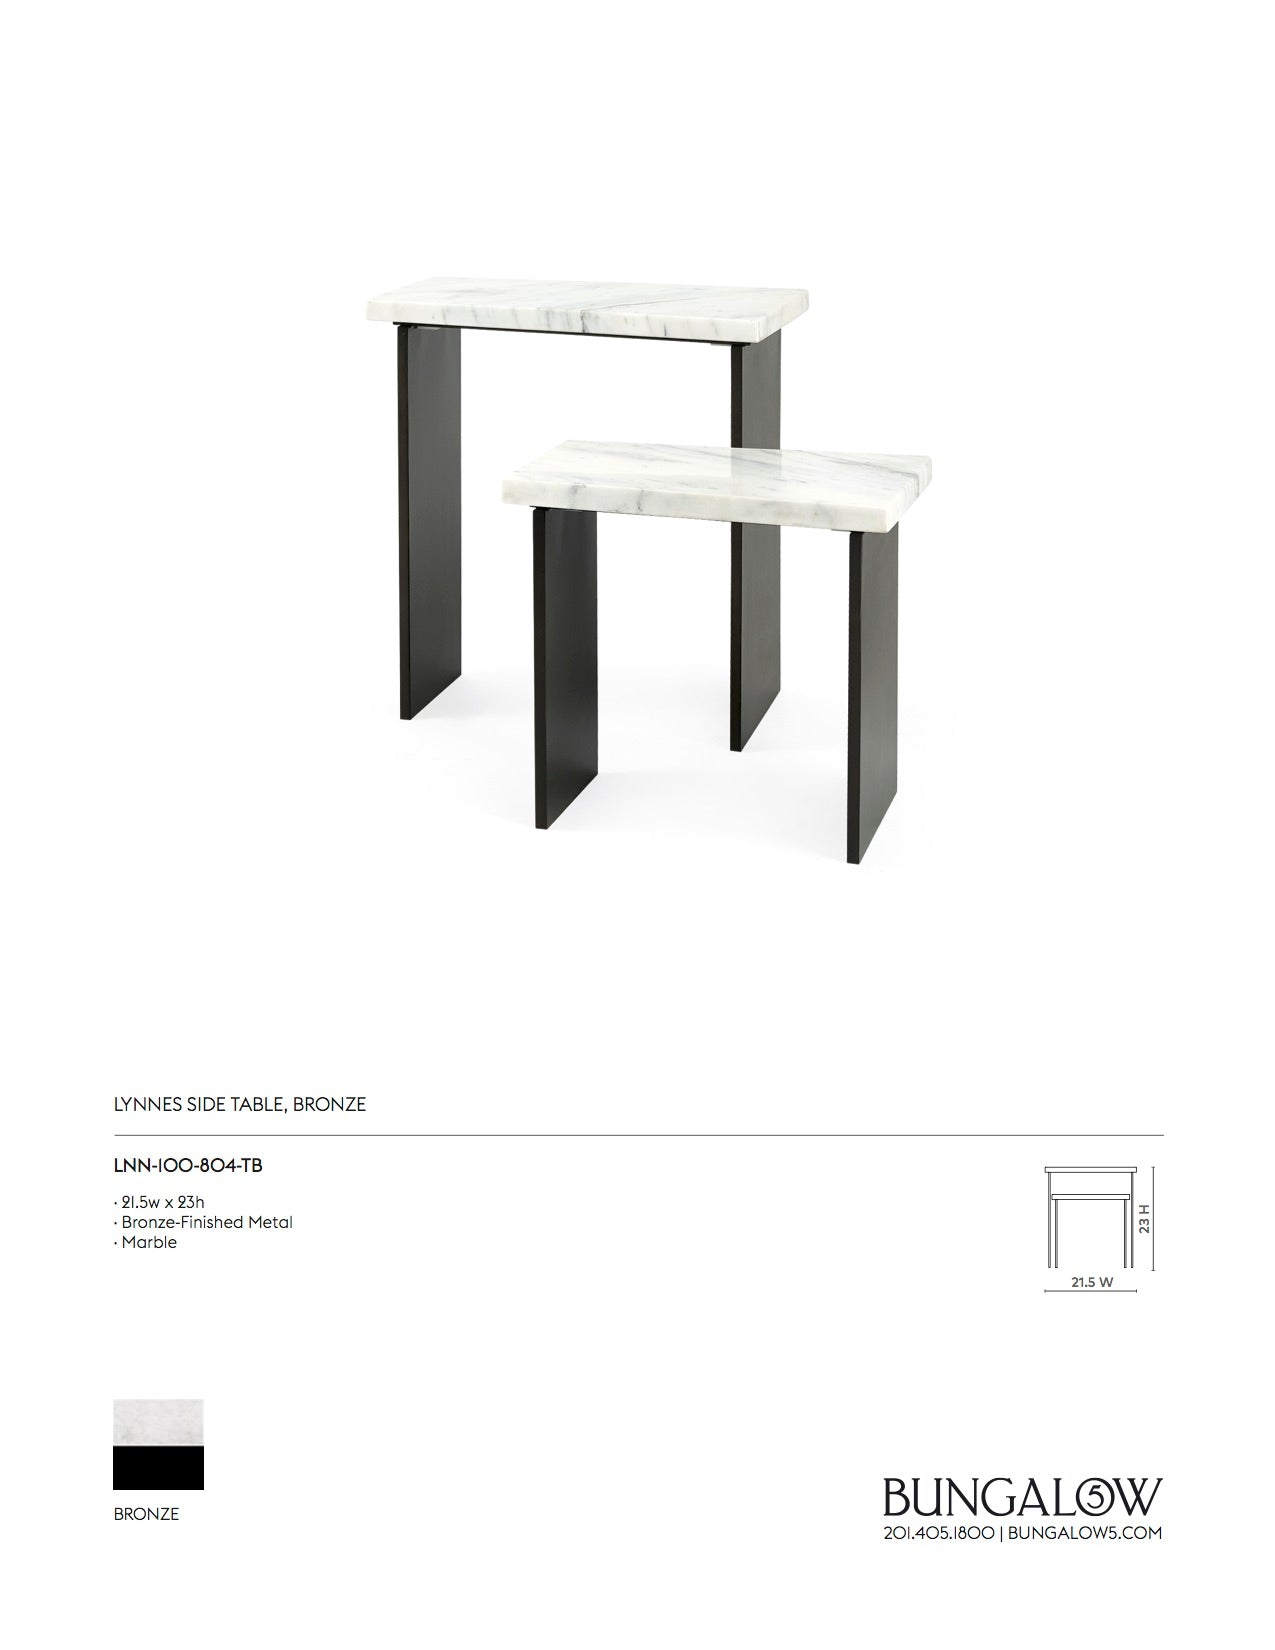 Bungalow 5 Lynnes Side Table Tearsheet